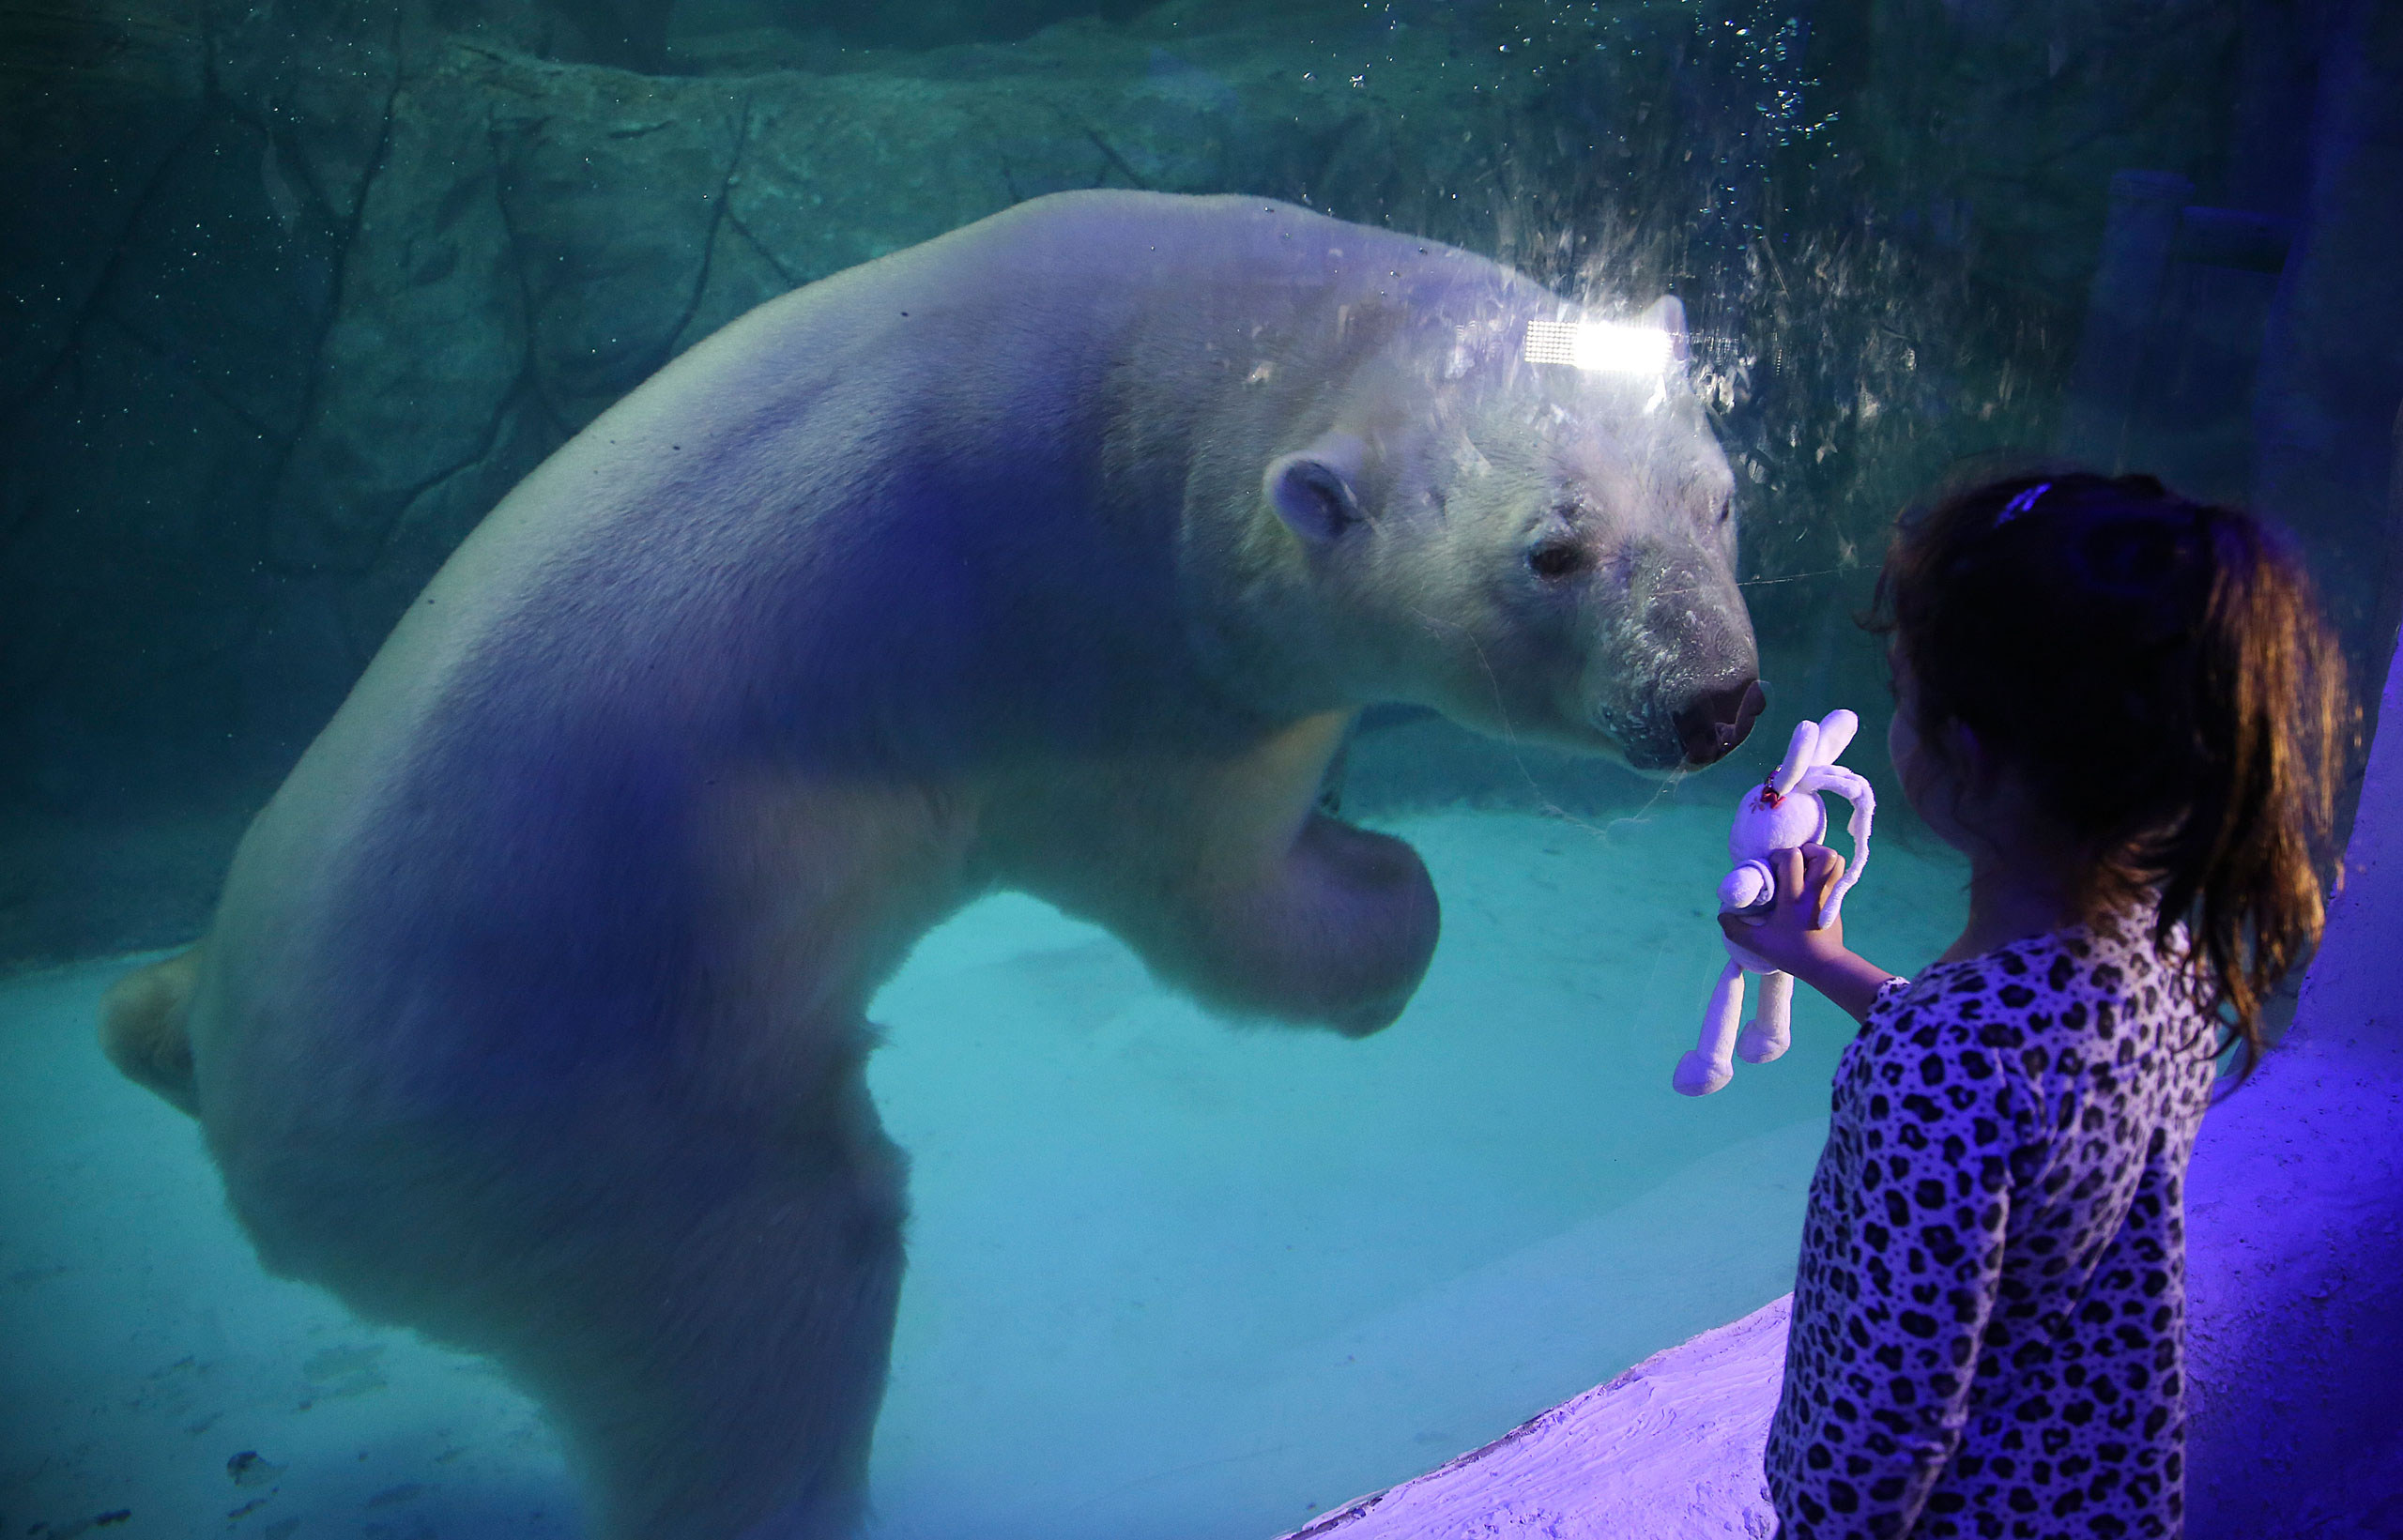 A young visitor holds up her toy bunny to the aquarium glass in front of Aurora the Russian polar bear at the Sao Paulo Aquarium, Brazil, April 16, 2015.